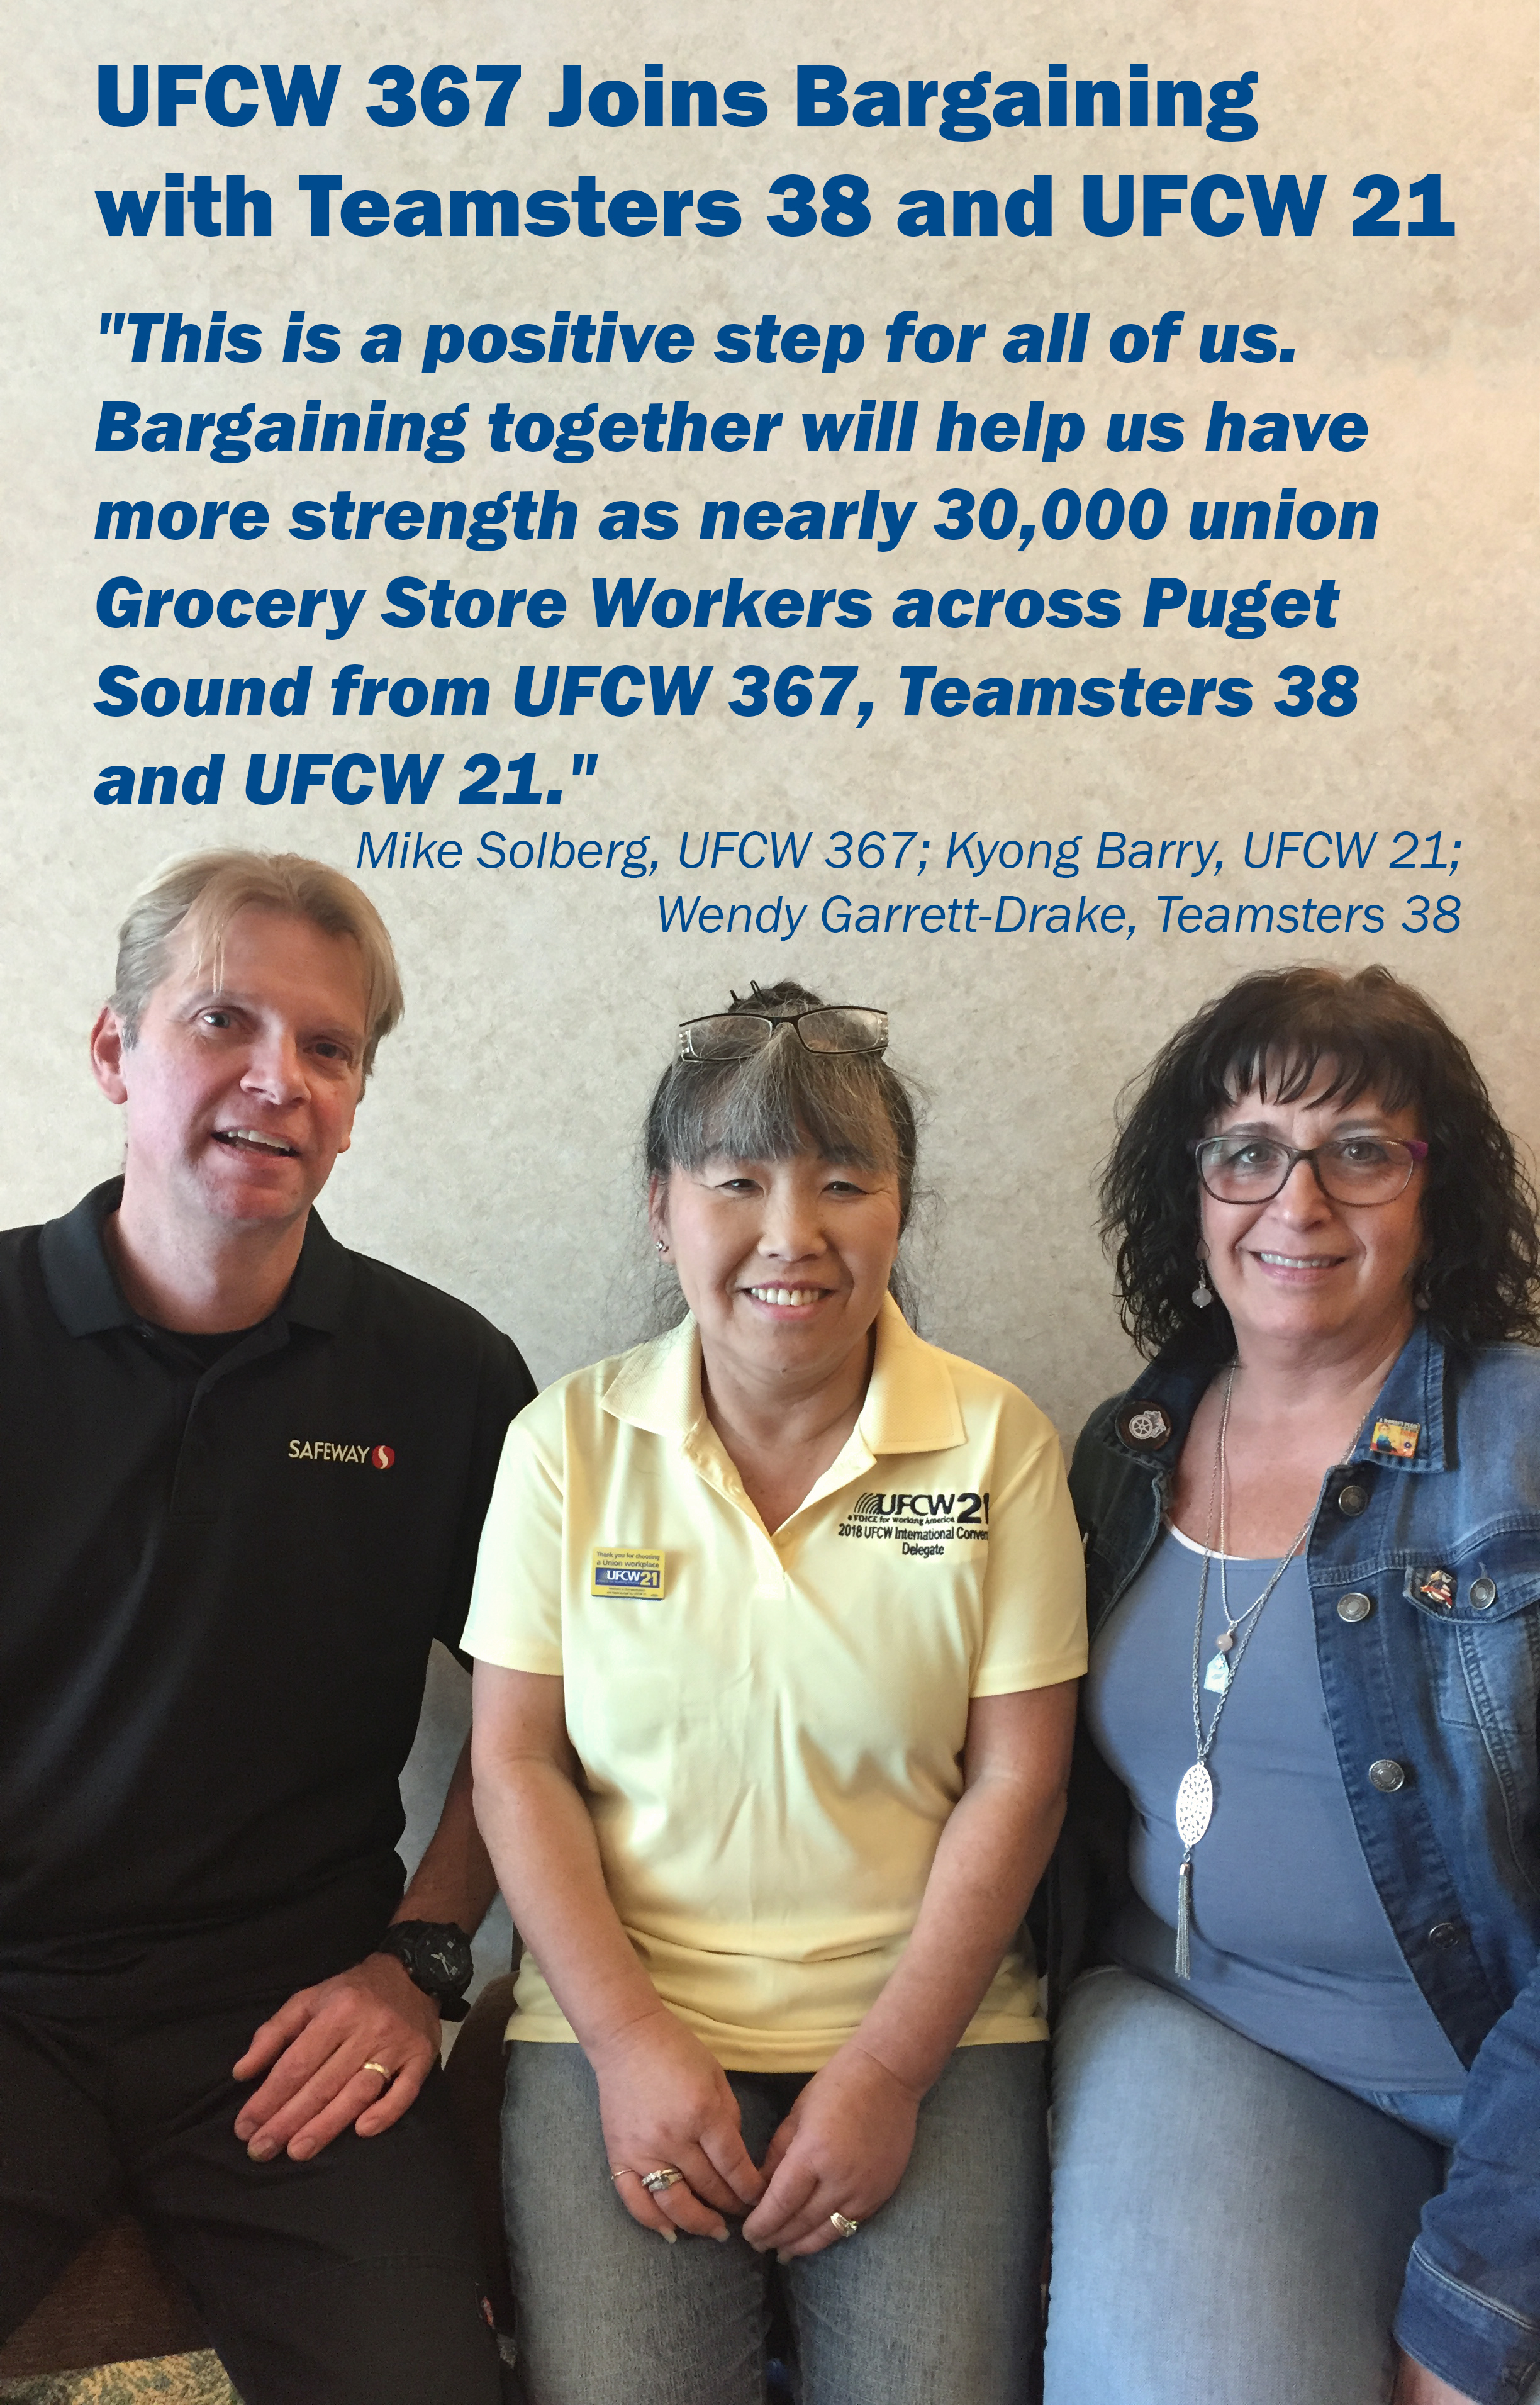 Mike Solberg, UFCW 367 Kyong Barry, UFCW 21 Wendy Garrett-Drake, Teamsters 38.jpg